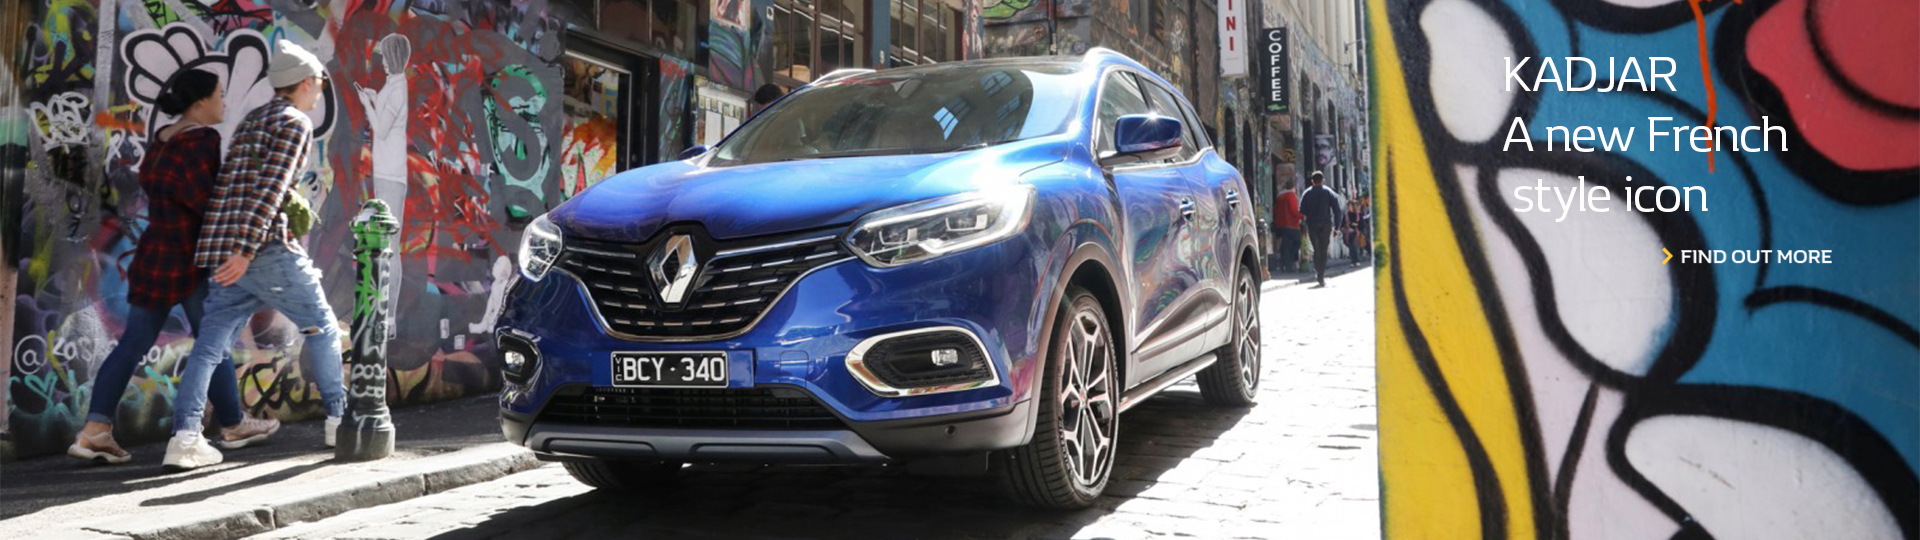 KADJAR a new french style icon. Find out more